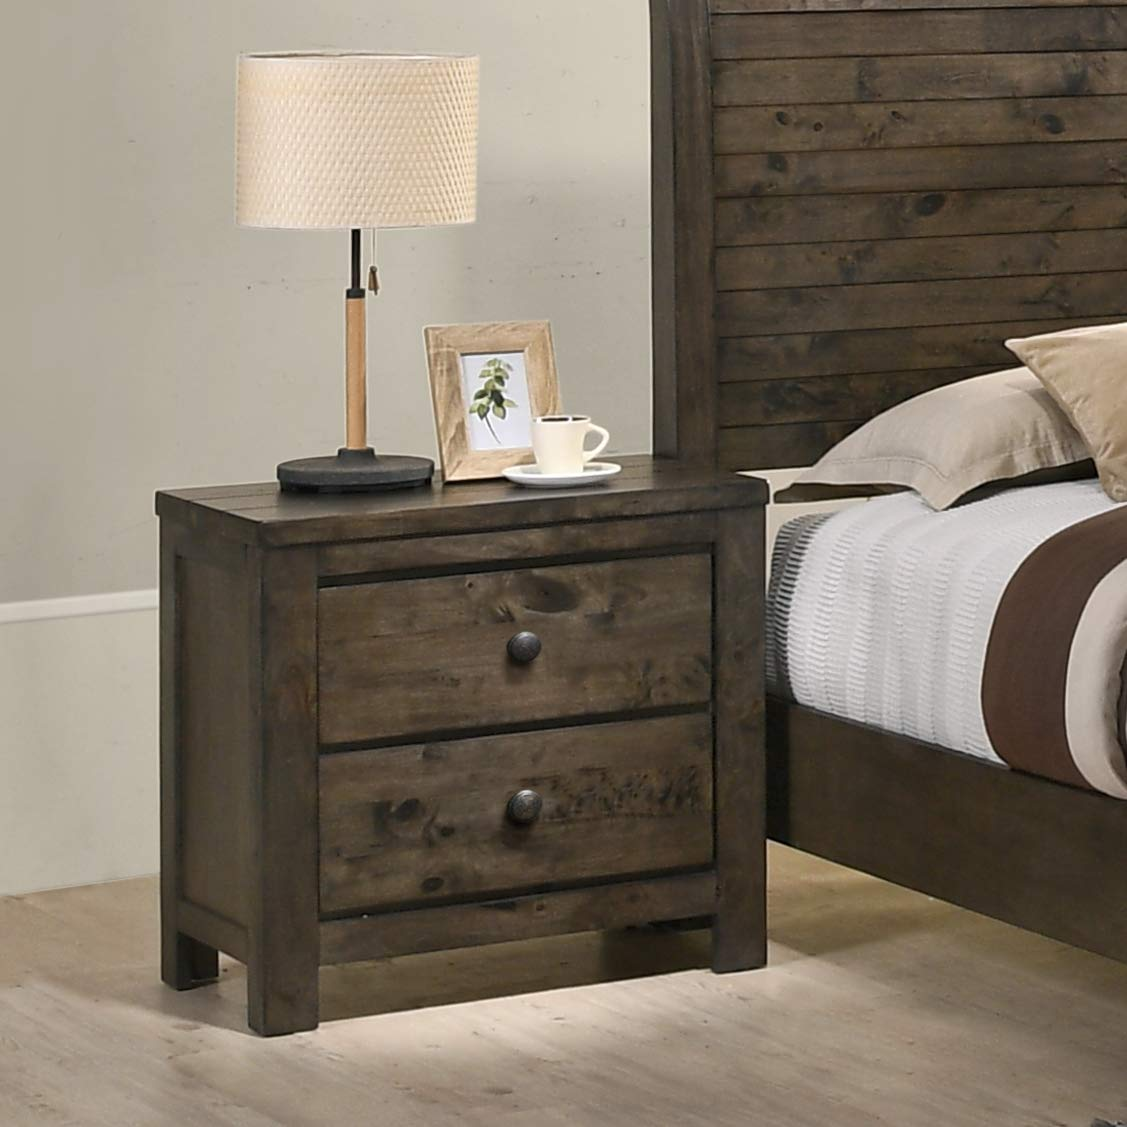 Roundhill Furniture Pavita Weathered Distressed Night Stand, Espresso by Roundhill Furniture